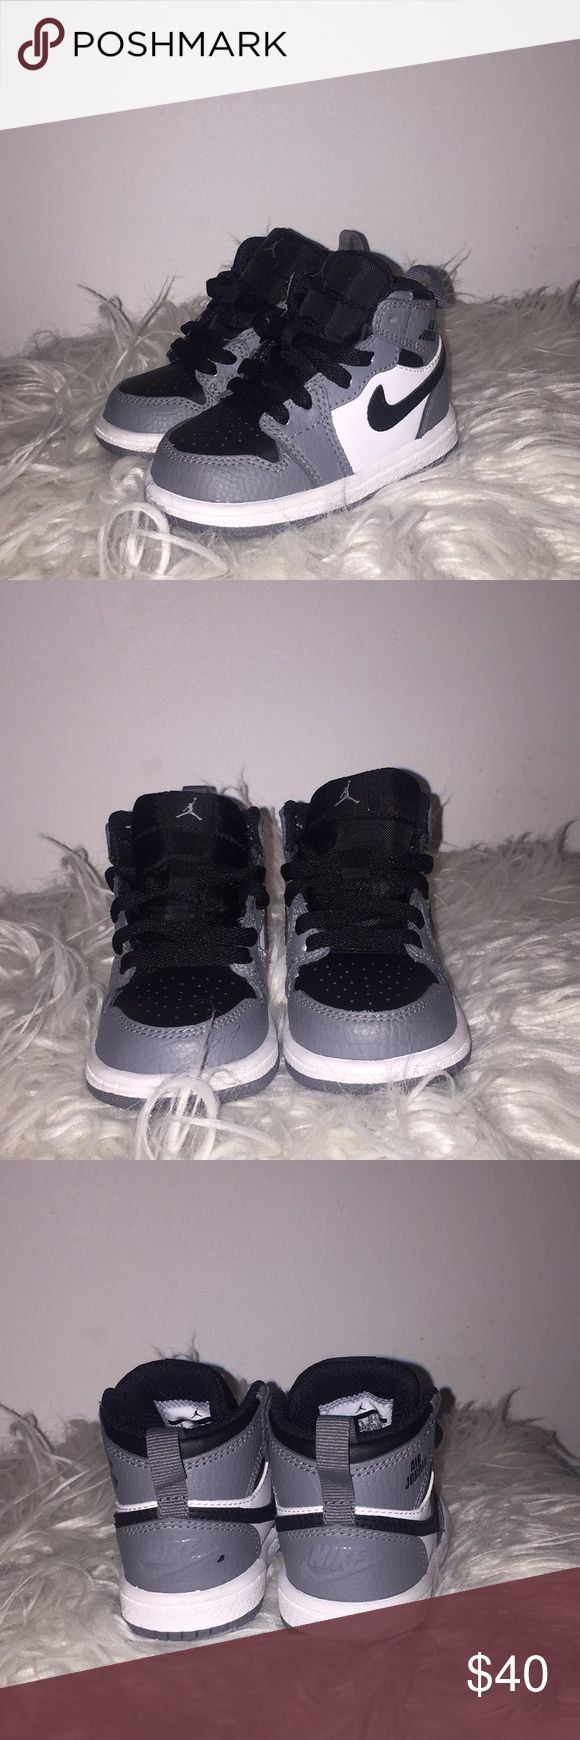 Toddler Jordan 1s Gently worn - no wear besides a small scuff of back of shoe - still in excellent condition - size 4c Jordan Shoes Sneakers